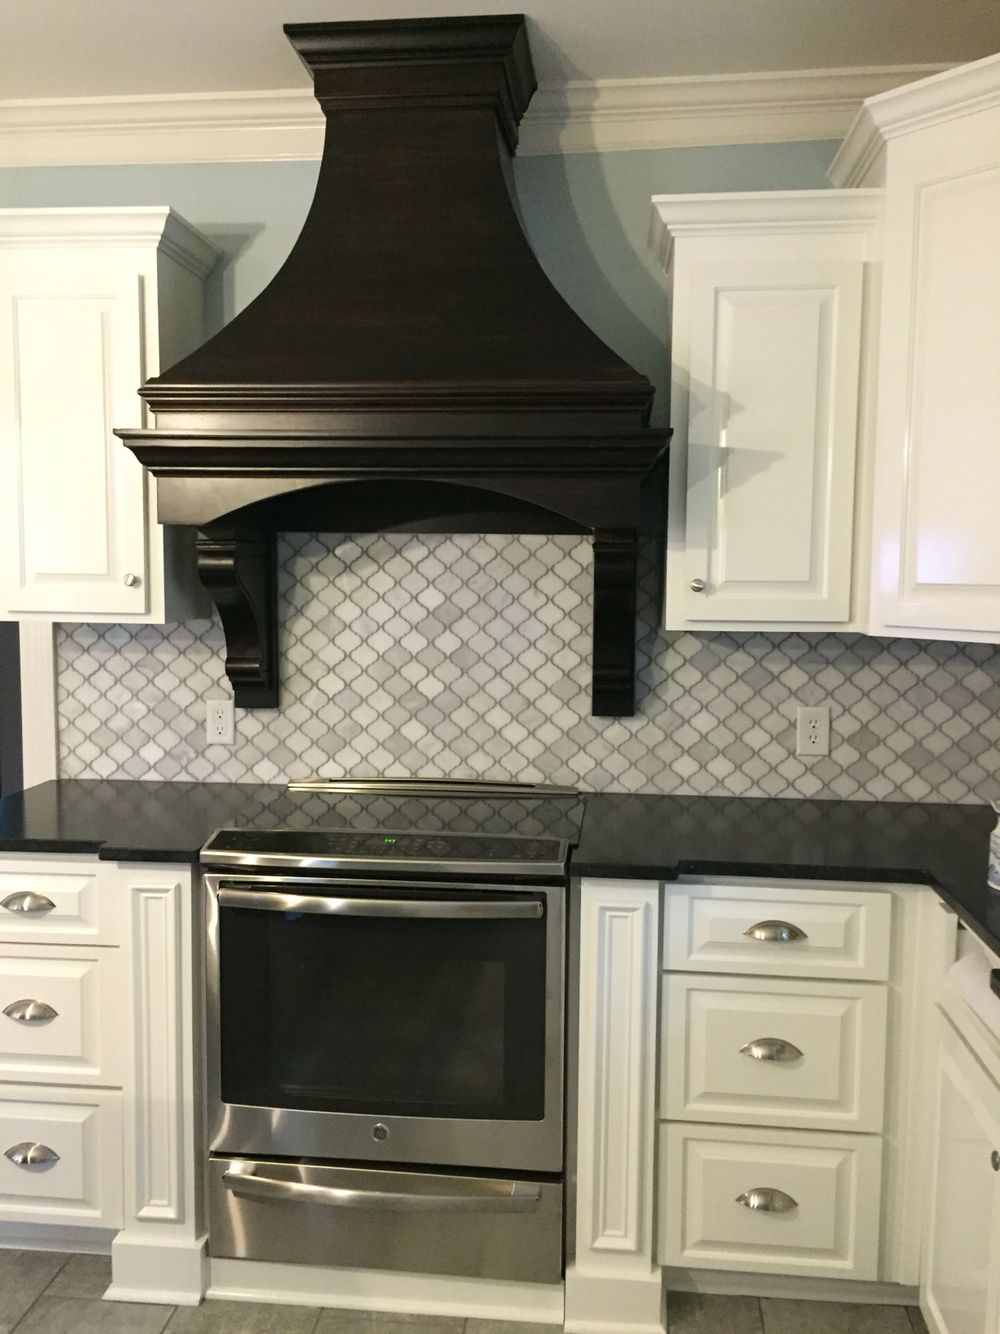 range hood vent hood custom kitchen custom vent hood custom range hood elegant kitchen on kitchen remodel vent hood id=69214